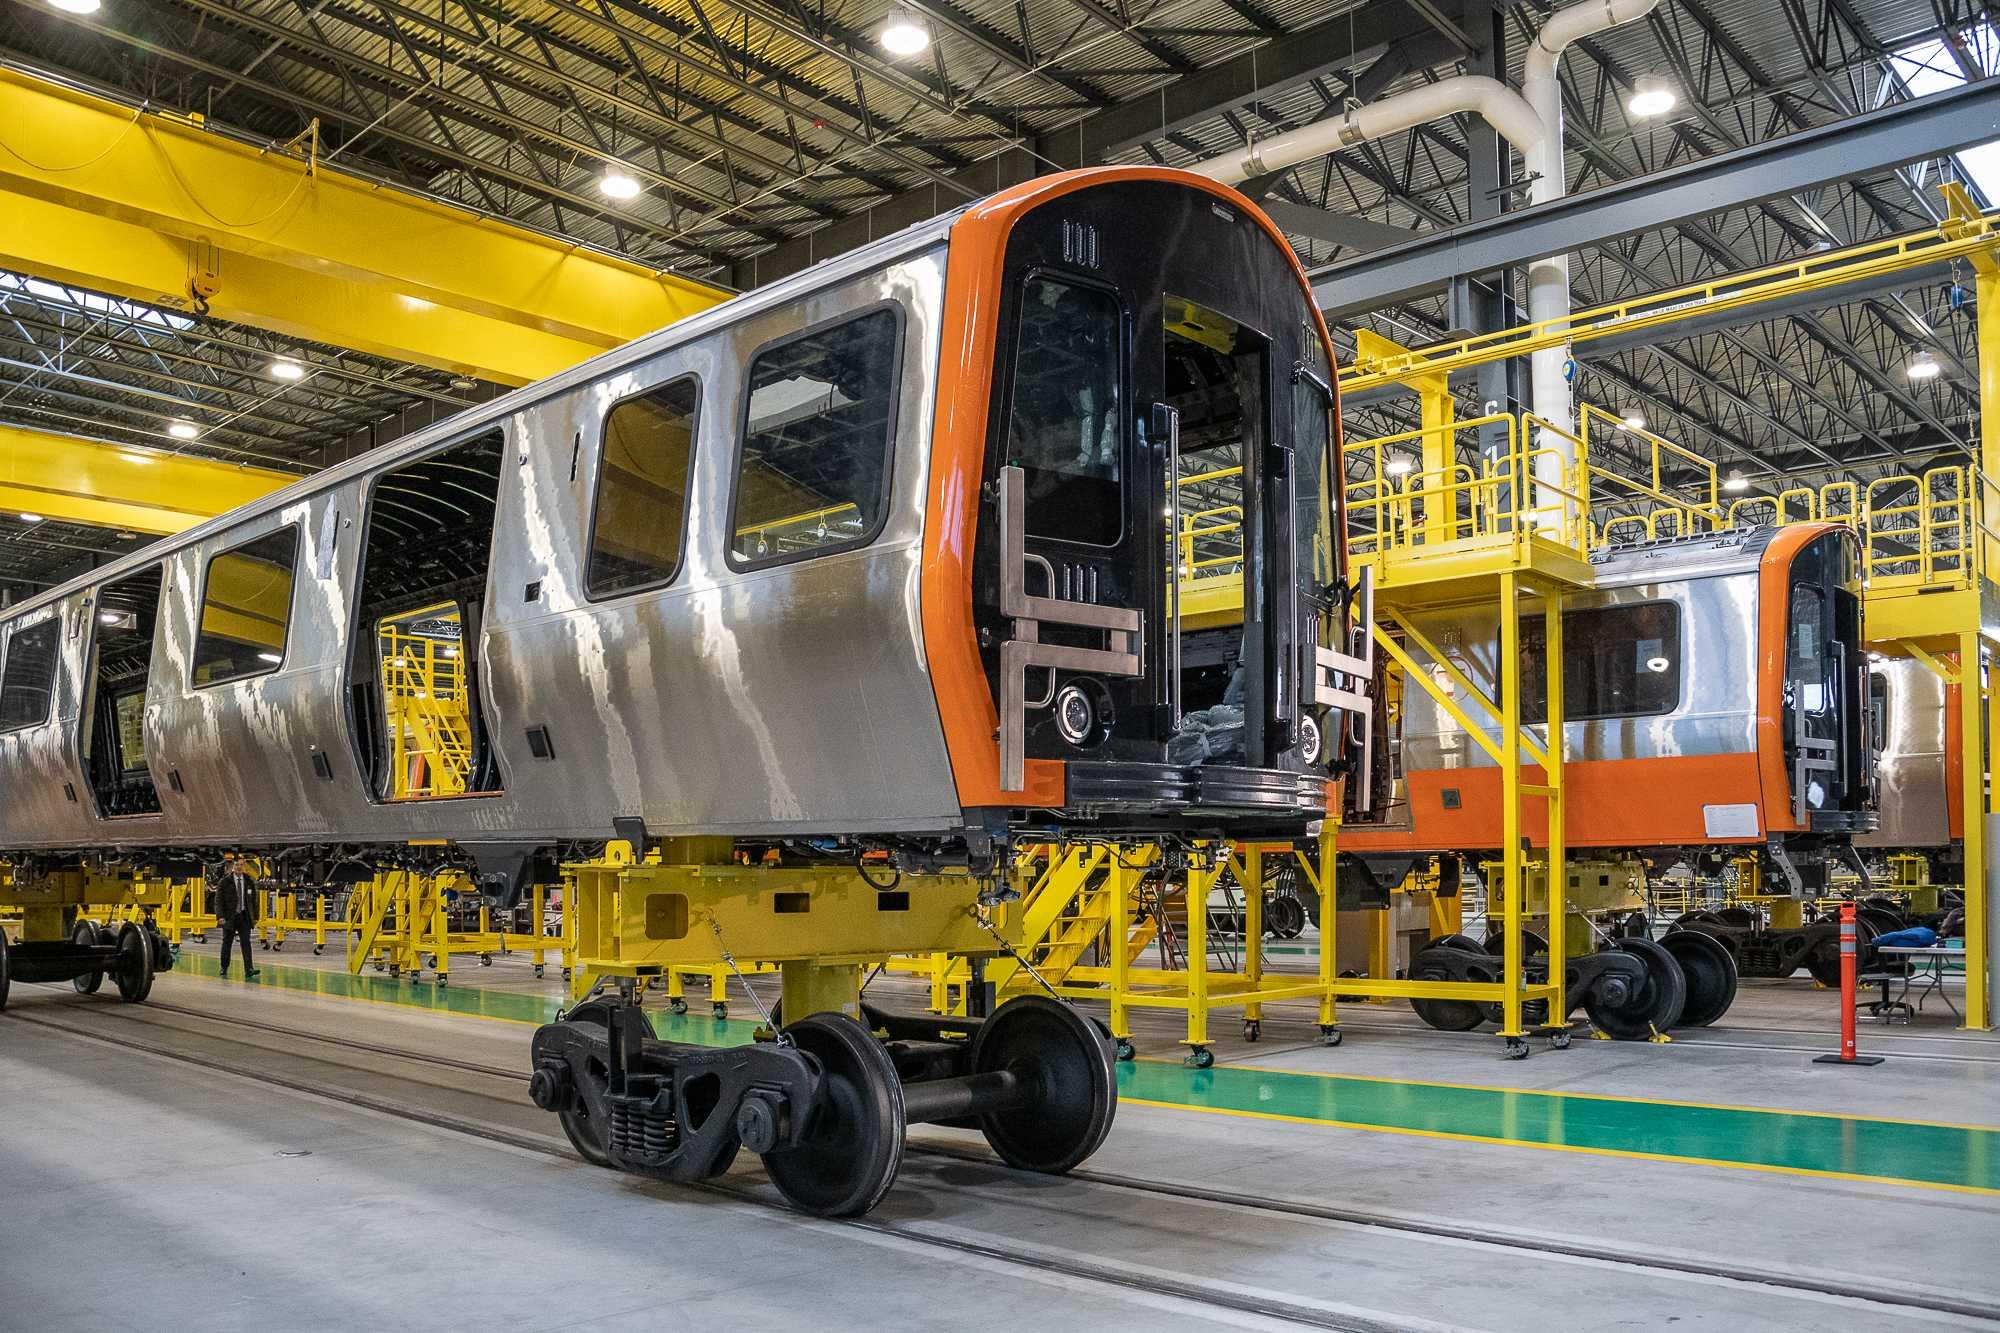 New Orange Line Car on a lift, separated from its wheels